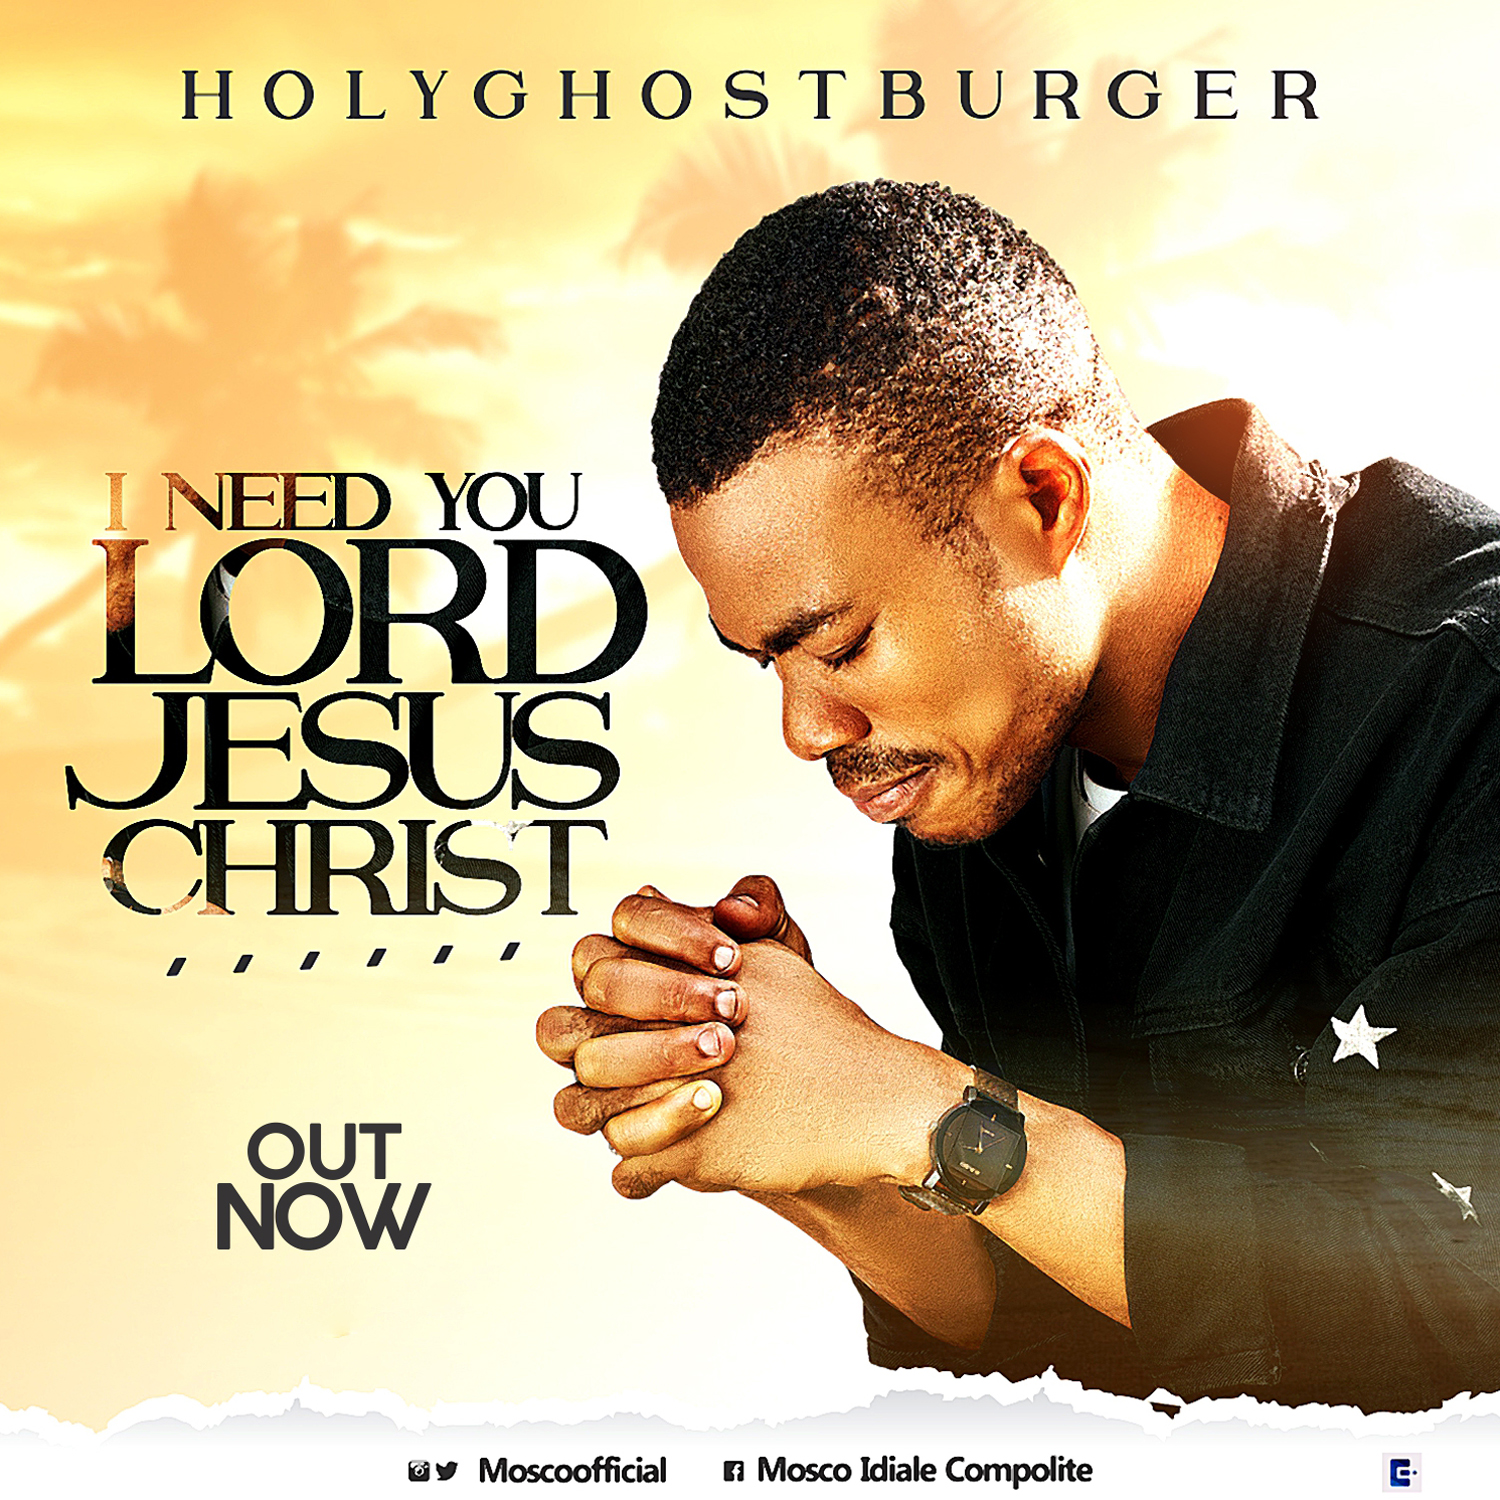 Photo of I Need You Lord Jesus Christ By HolyGhostBurger